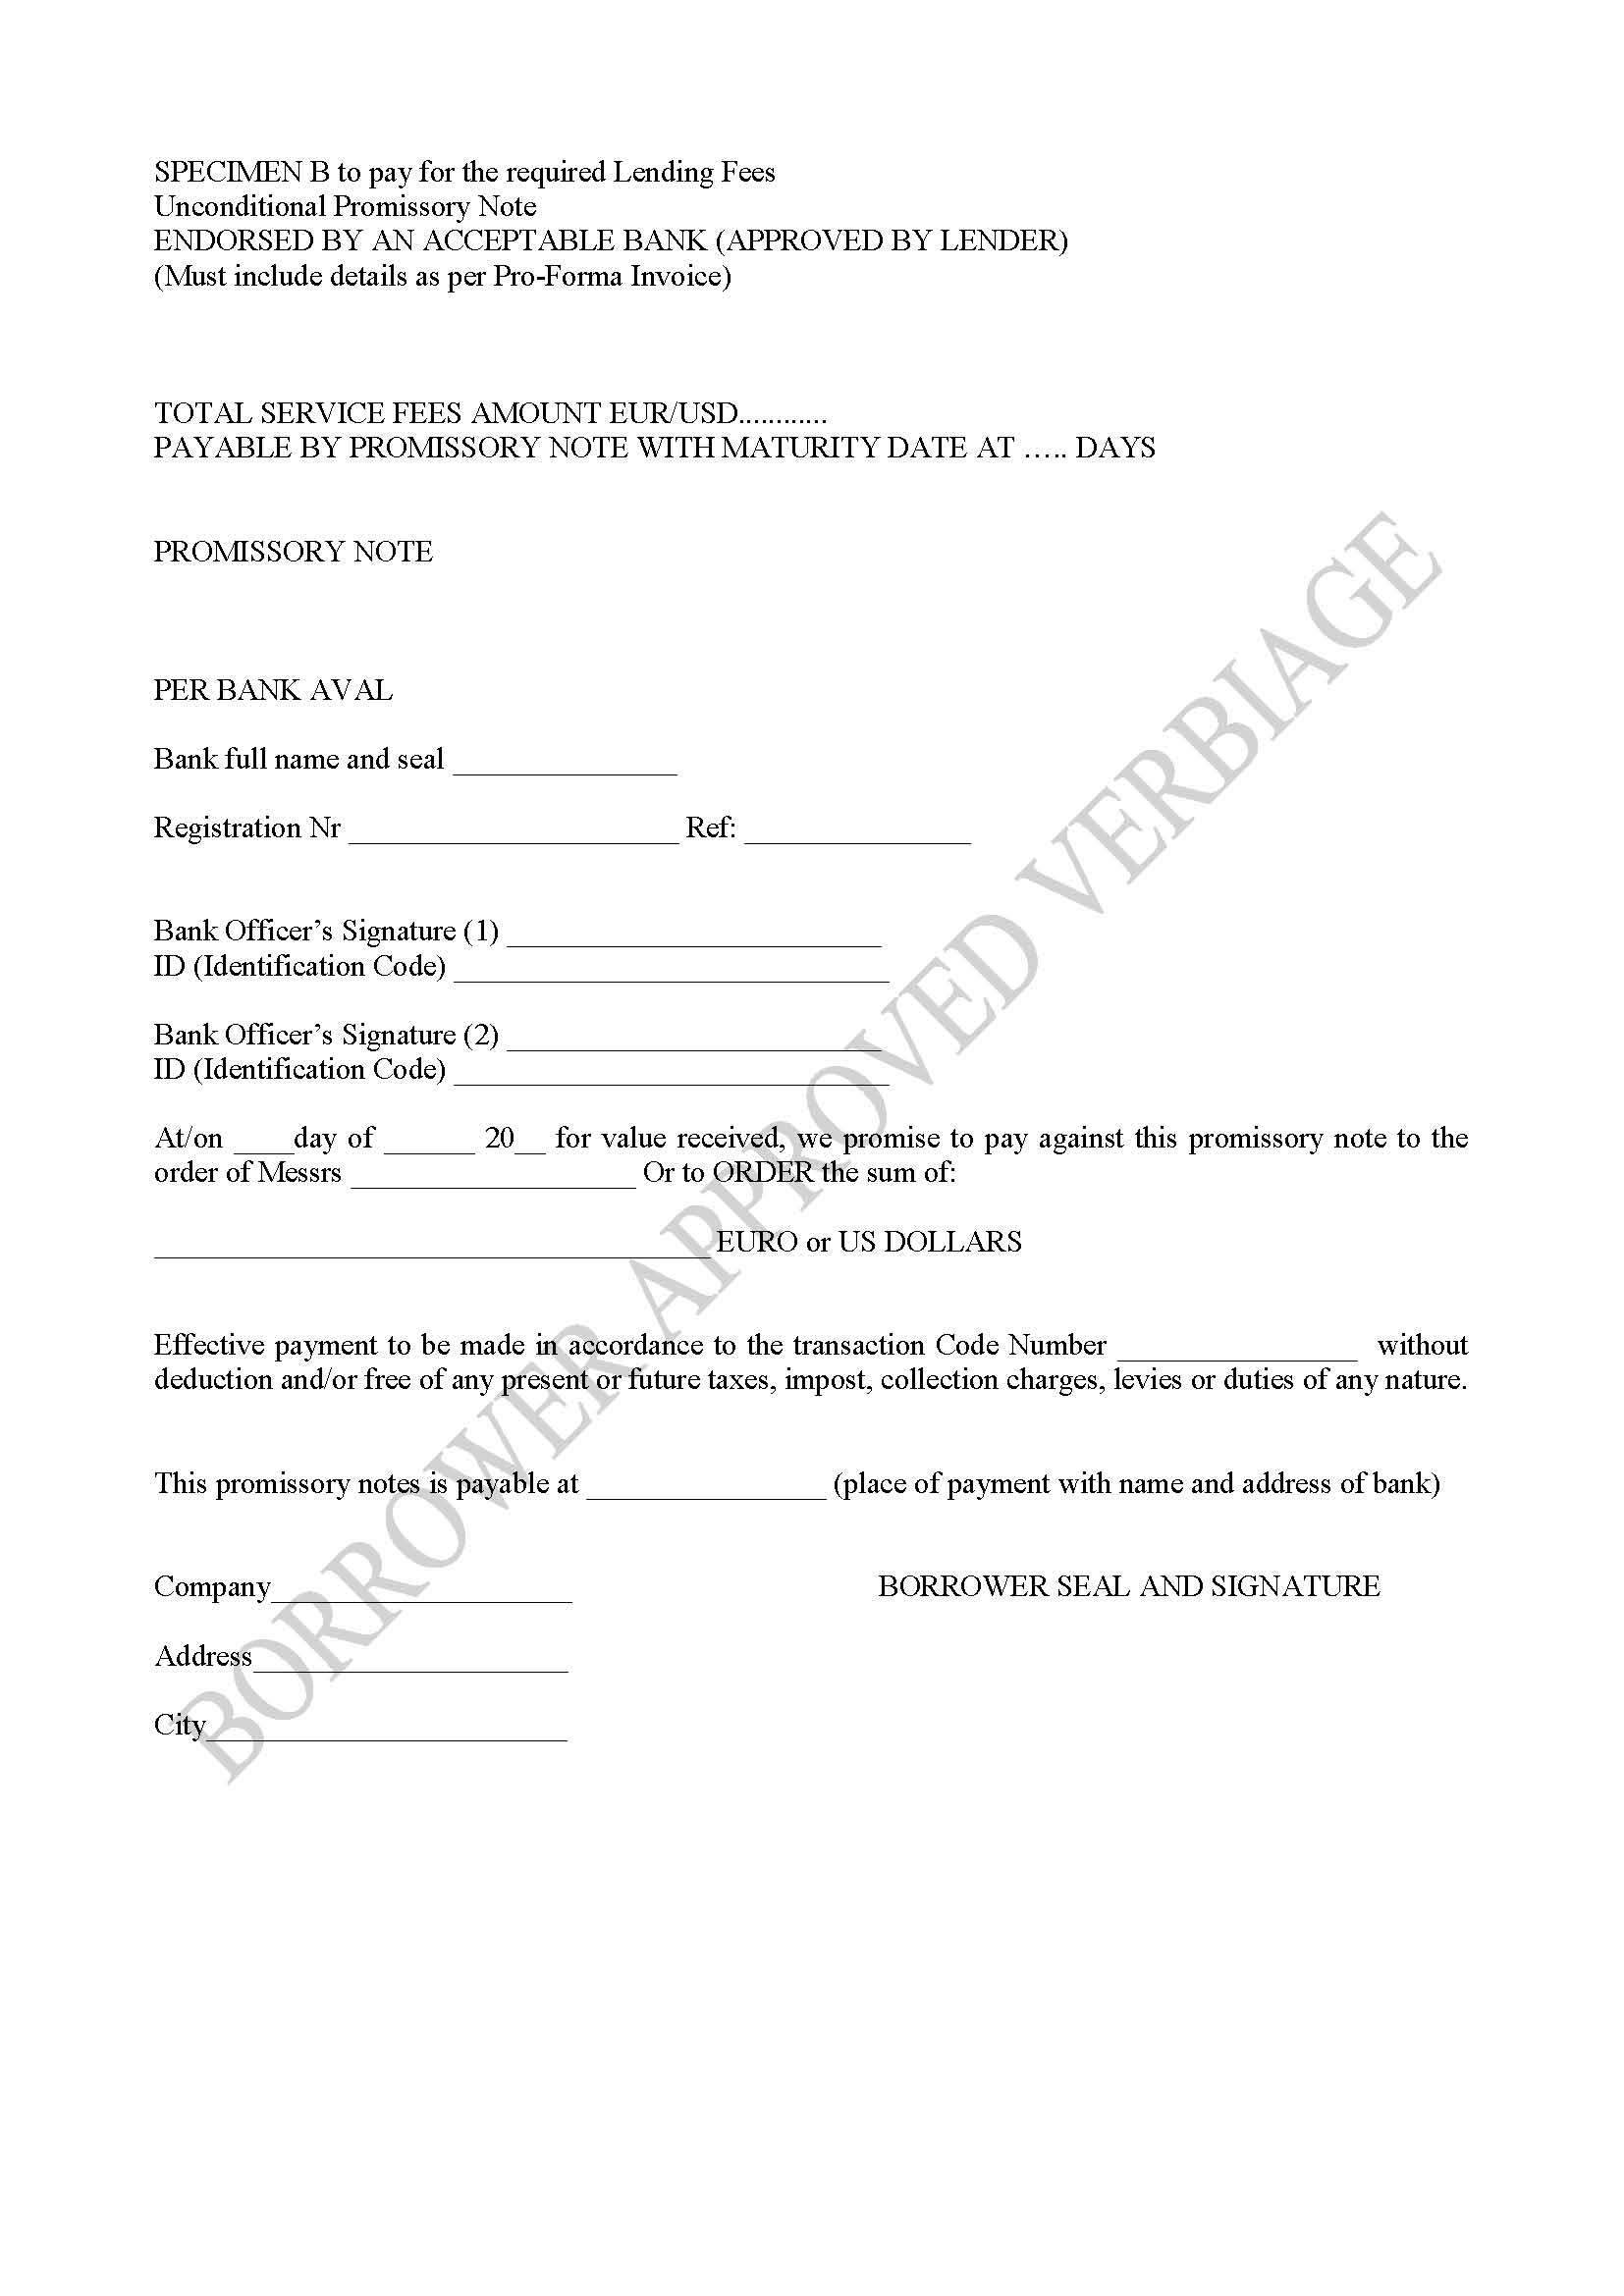 BUSINESS SUPPORT CONTRACT (ALL SPECIMEN)_Seite_2